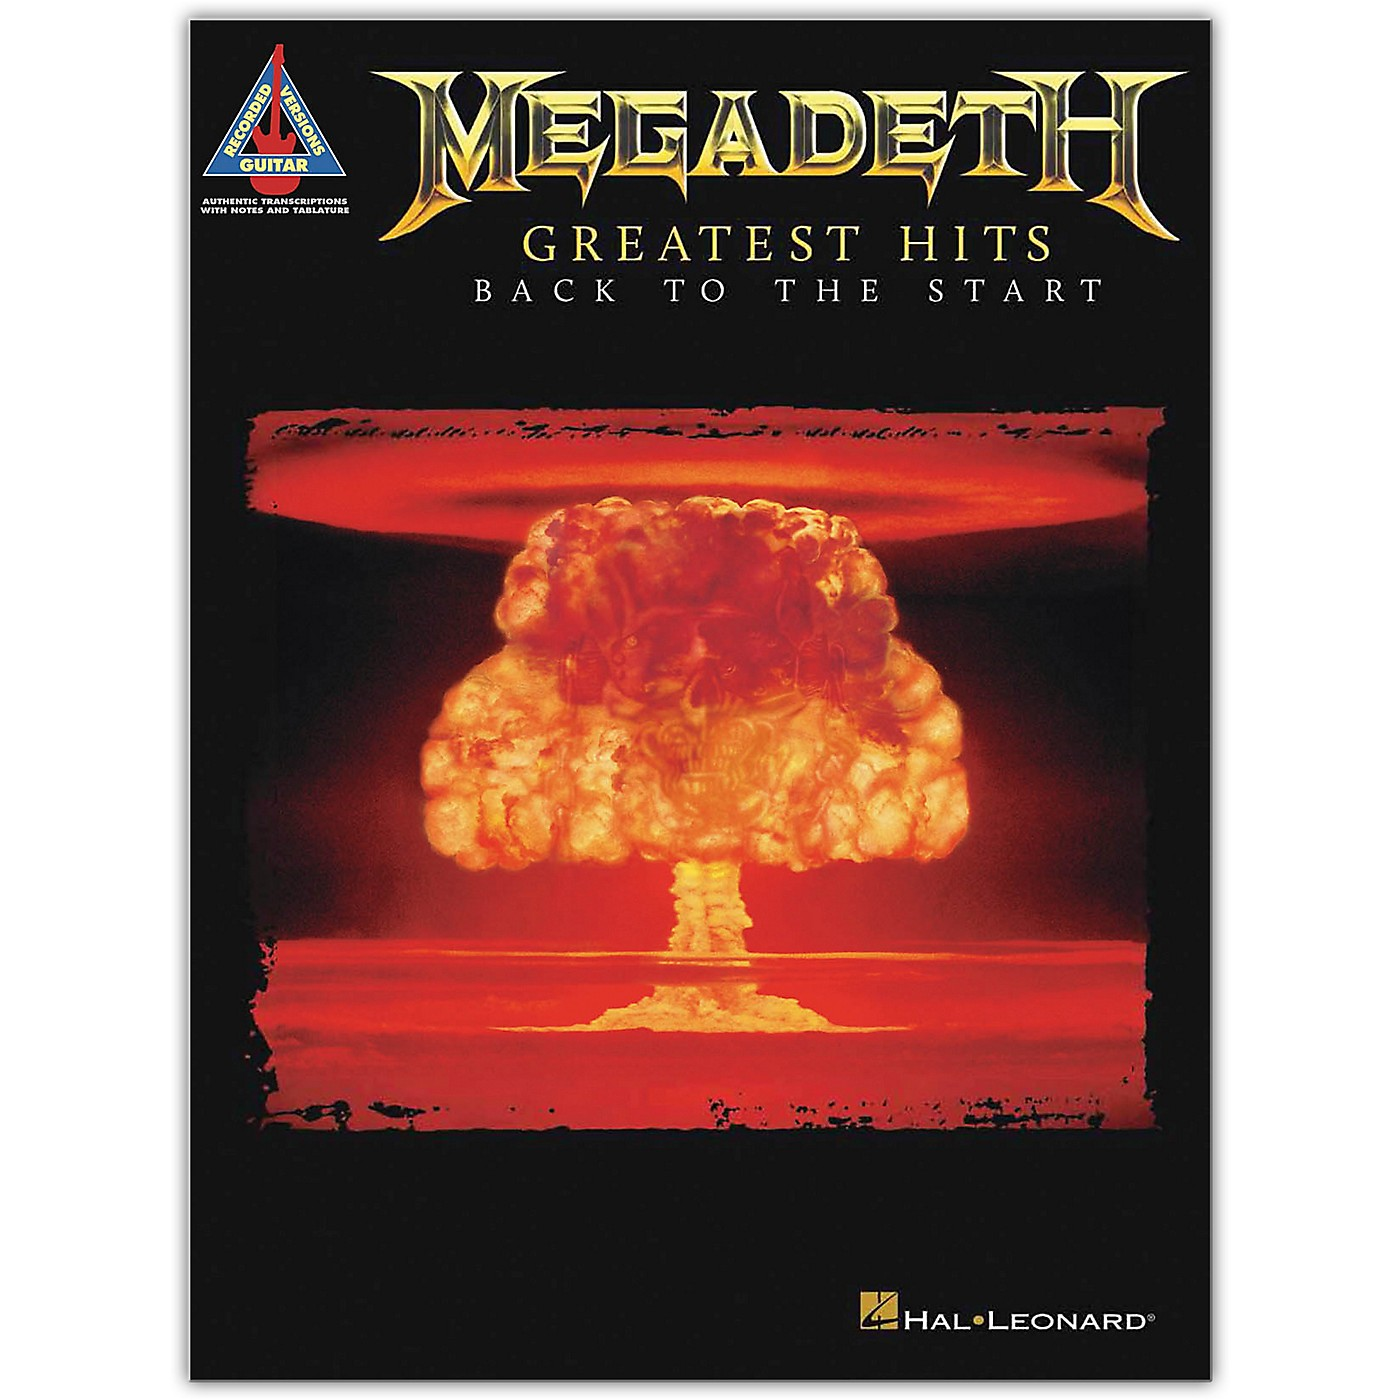 Hal Leonard Megadeth - Greatest Hits: Back to the Start Guitar Tab Songbook thumbnail